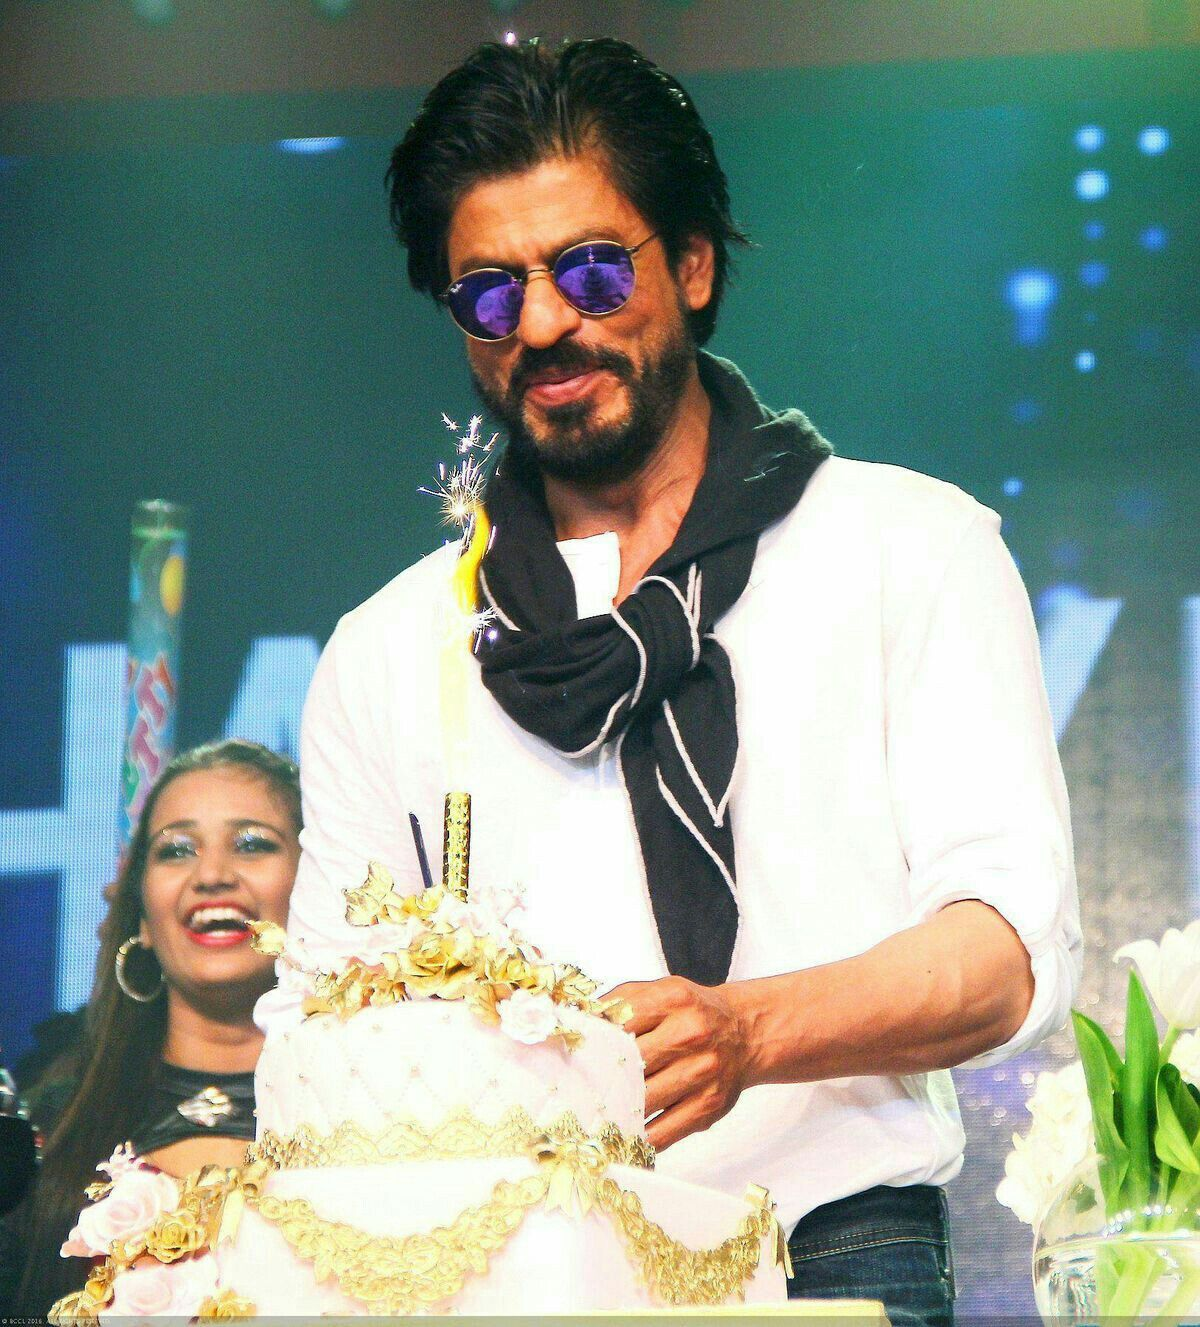 SRK Birthday Actors, Shahrukh khan, Shahrukh khan and kajol